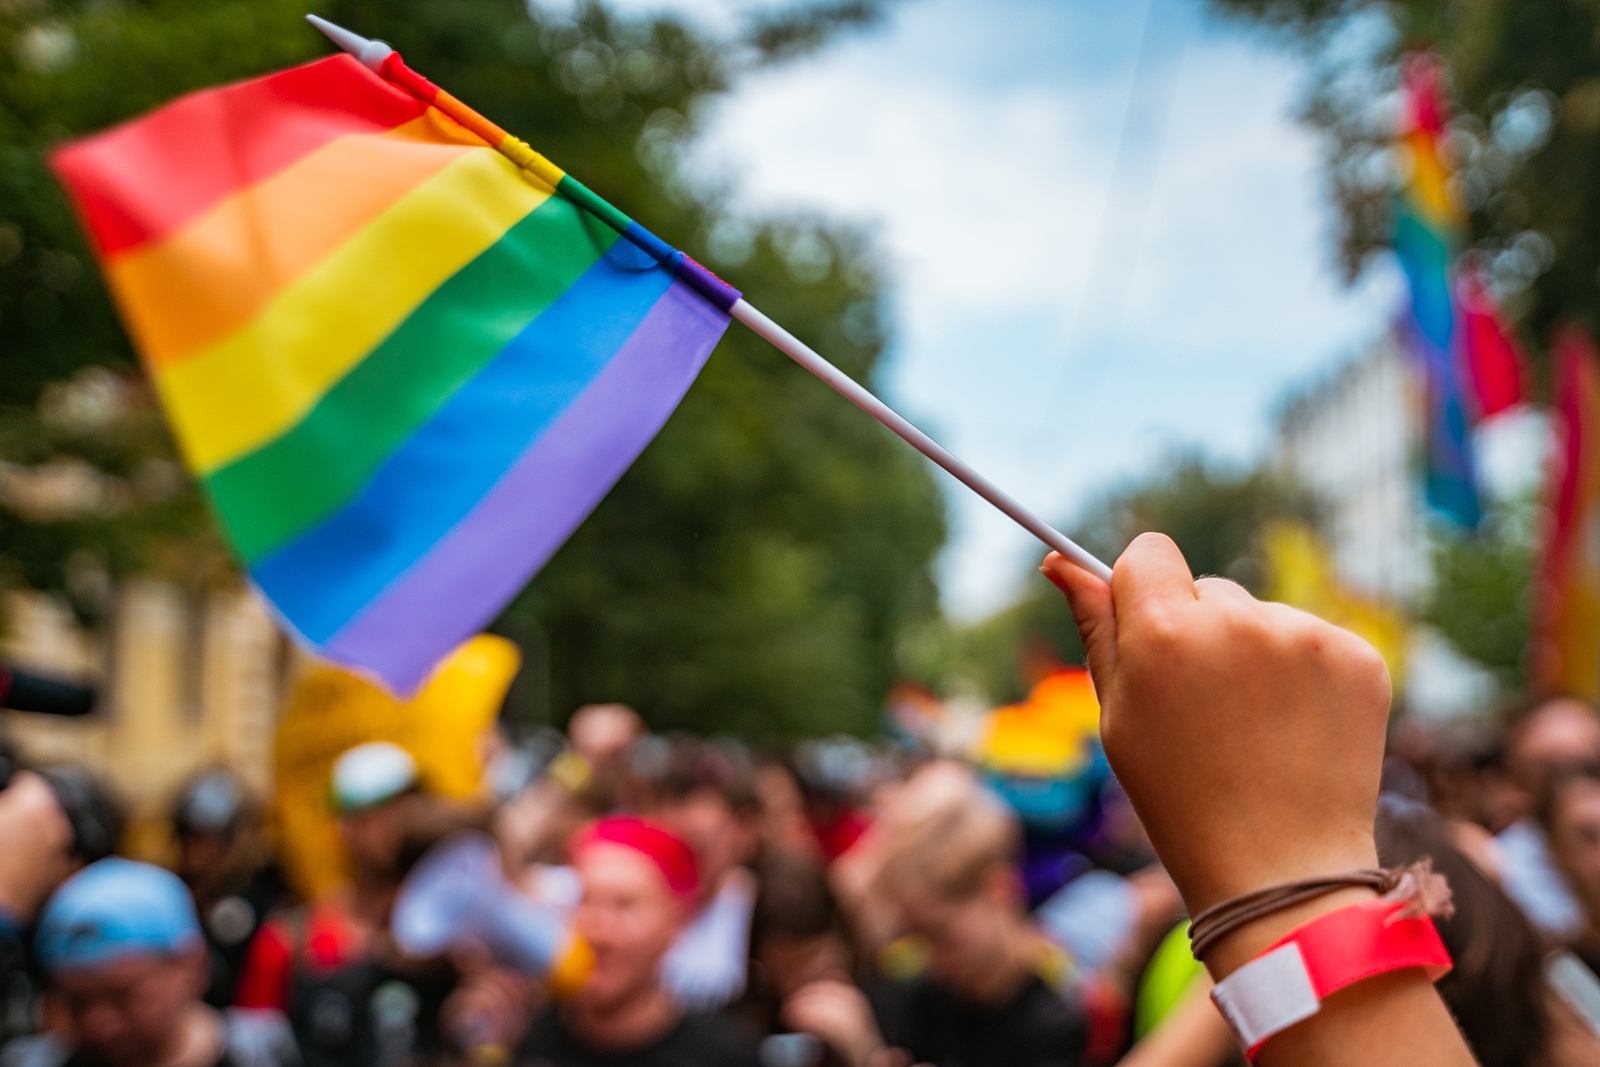 Image of hand holding up a pride flag in the middle of a pride festival. They are a source of lgbtq+ support in west bloomfield, mi. Therapyology offers lgbtq support groups in west bloomfield, mi, lgbt youth groups in west bloomfield, mi, and more.